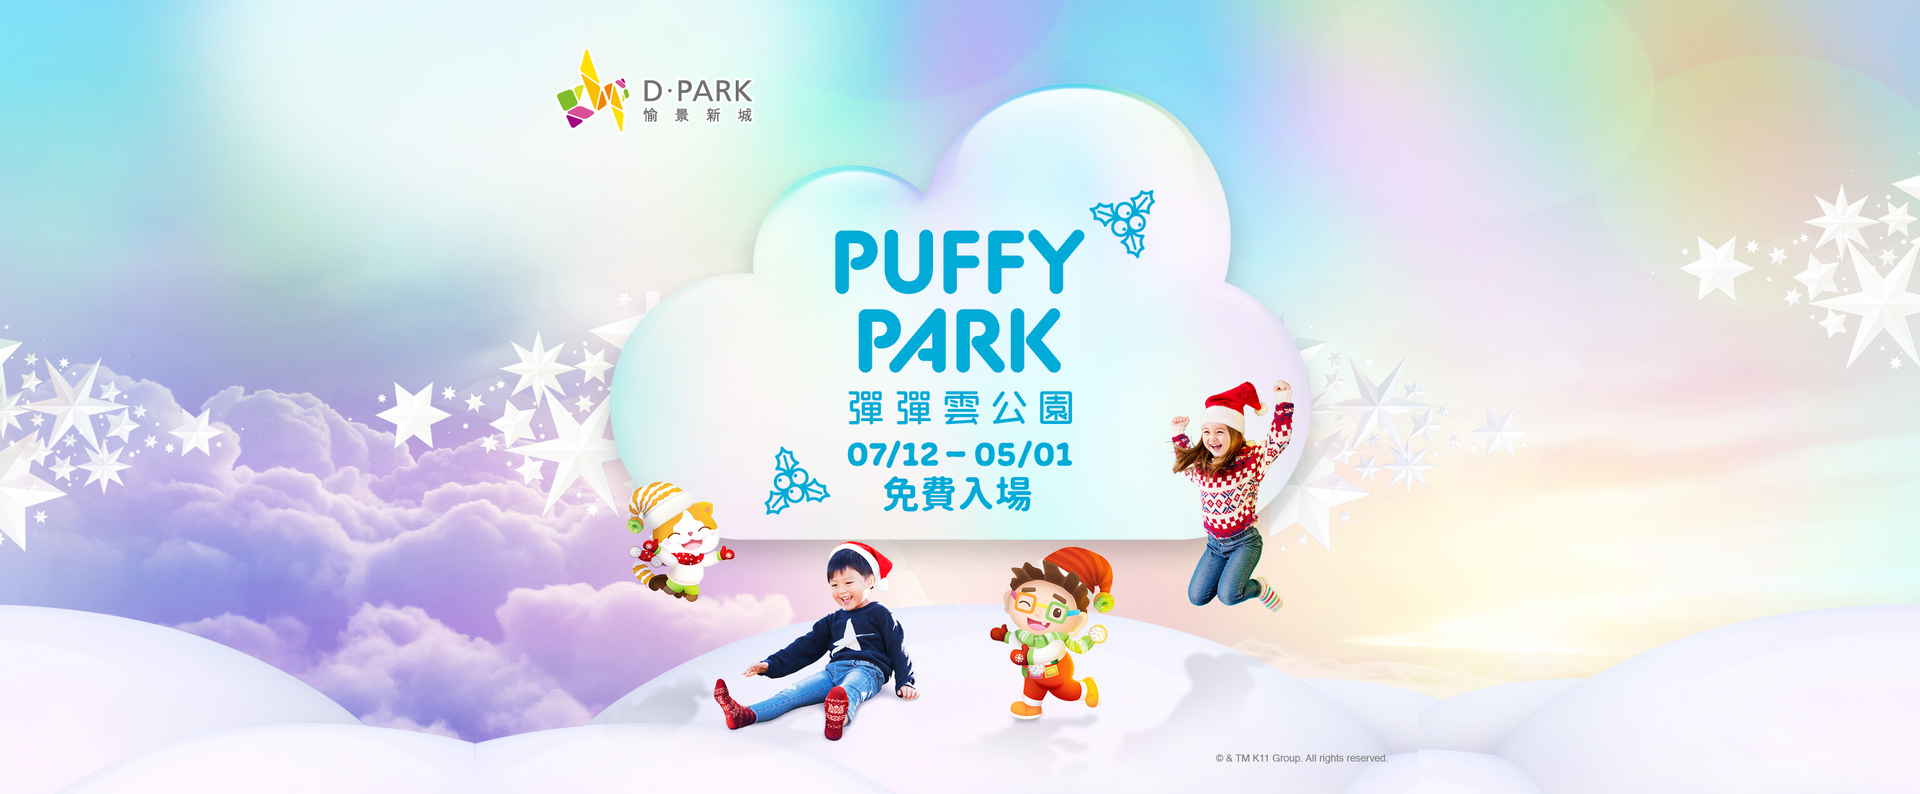 02 puffy park webhead banner1920x794 %283%29 large